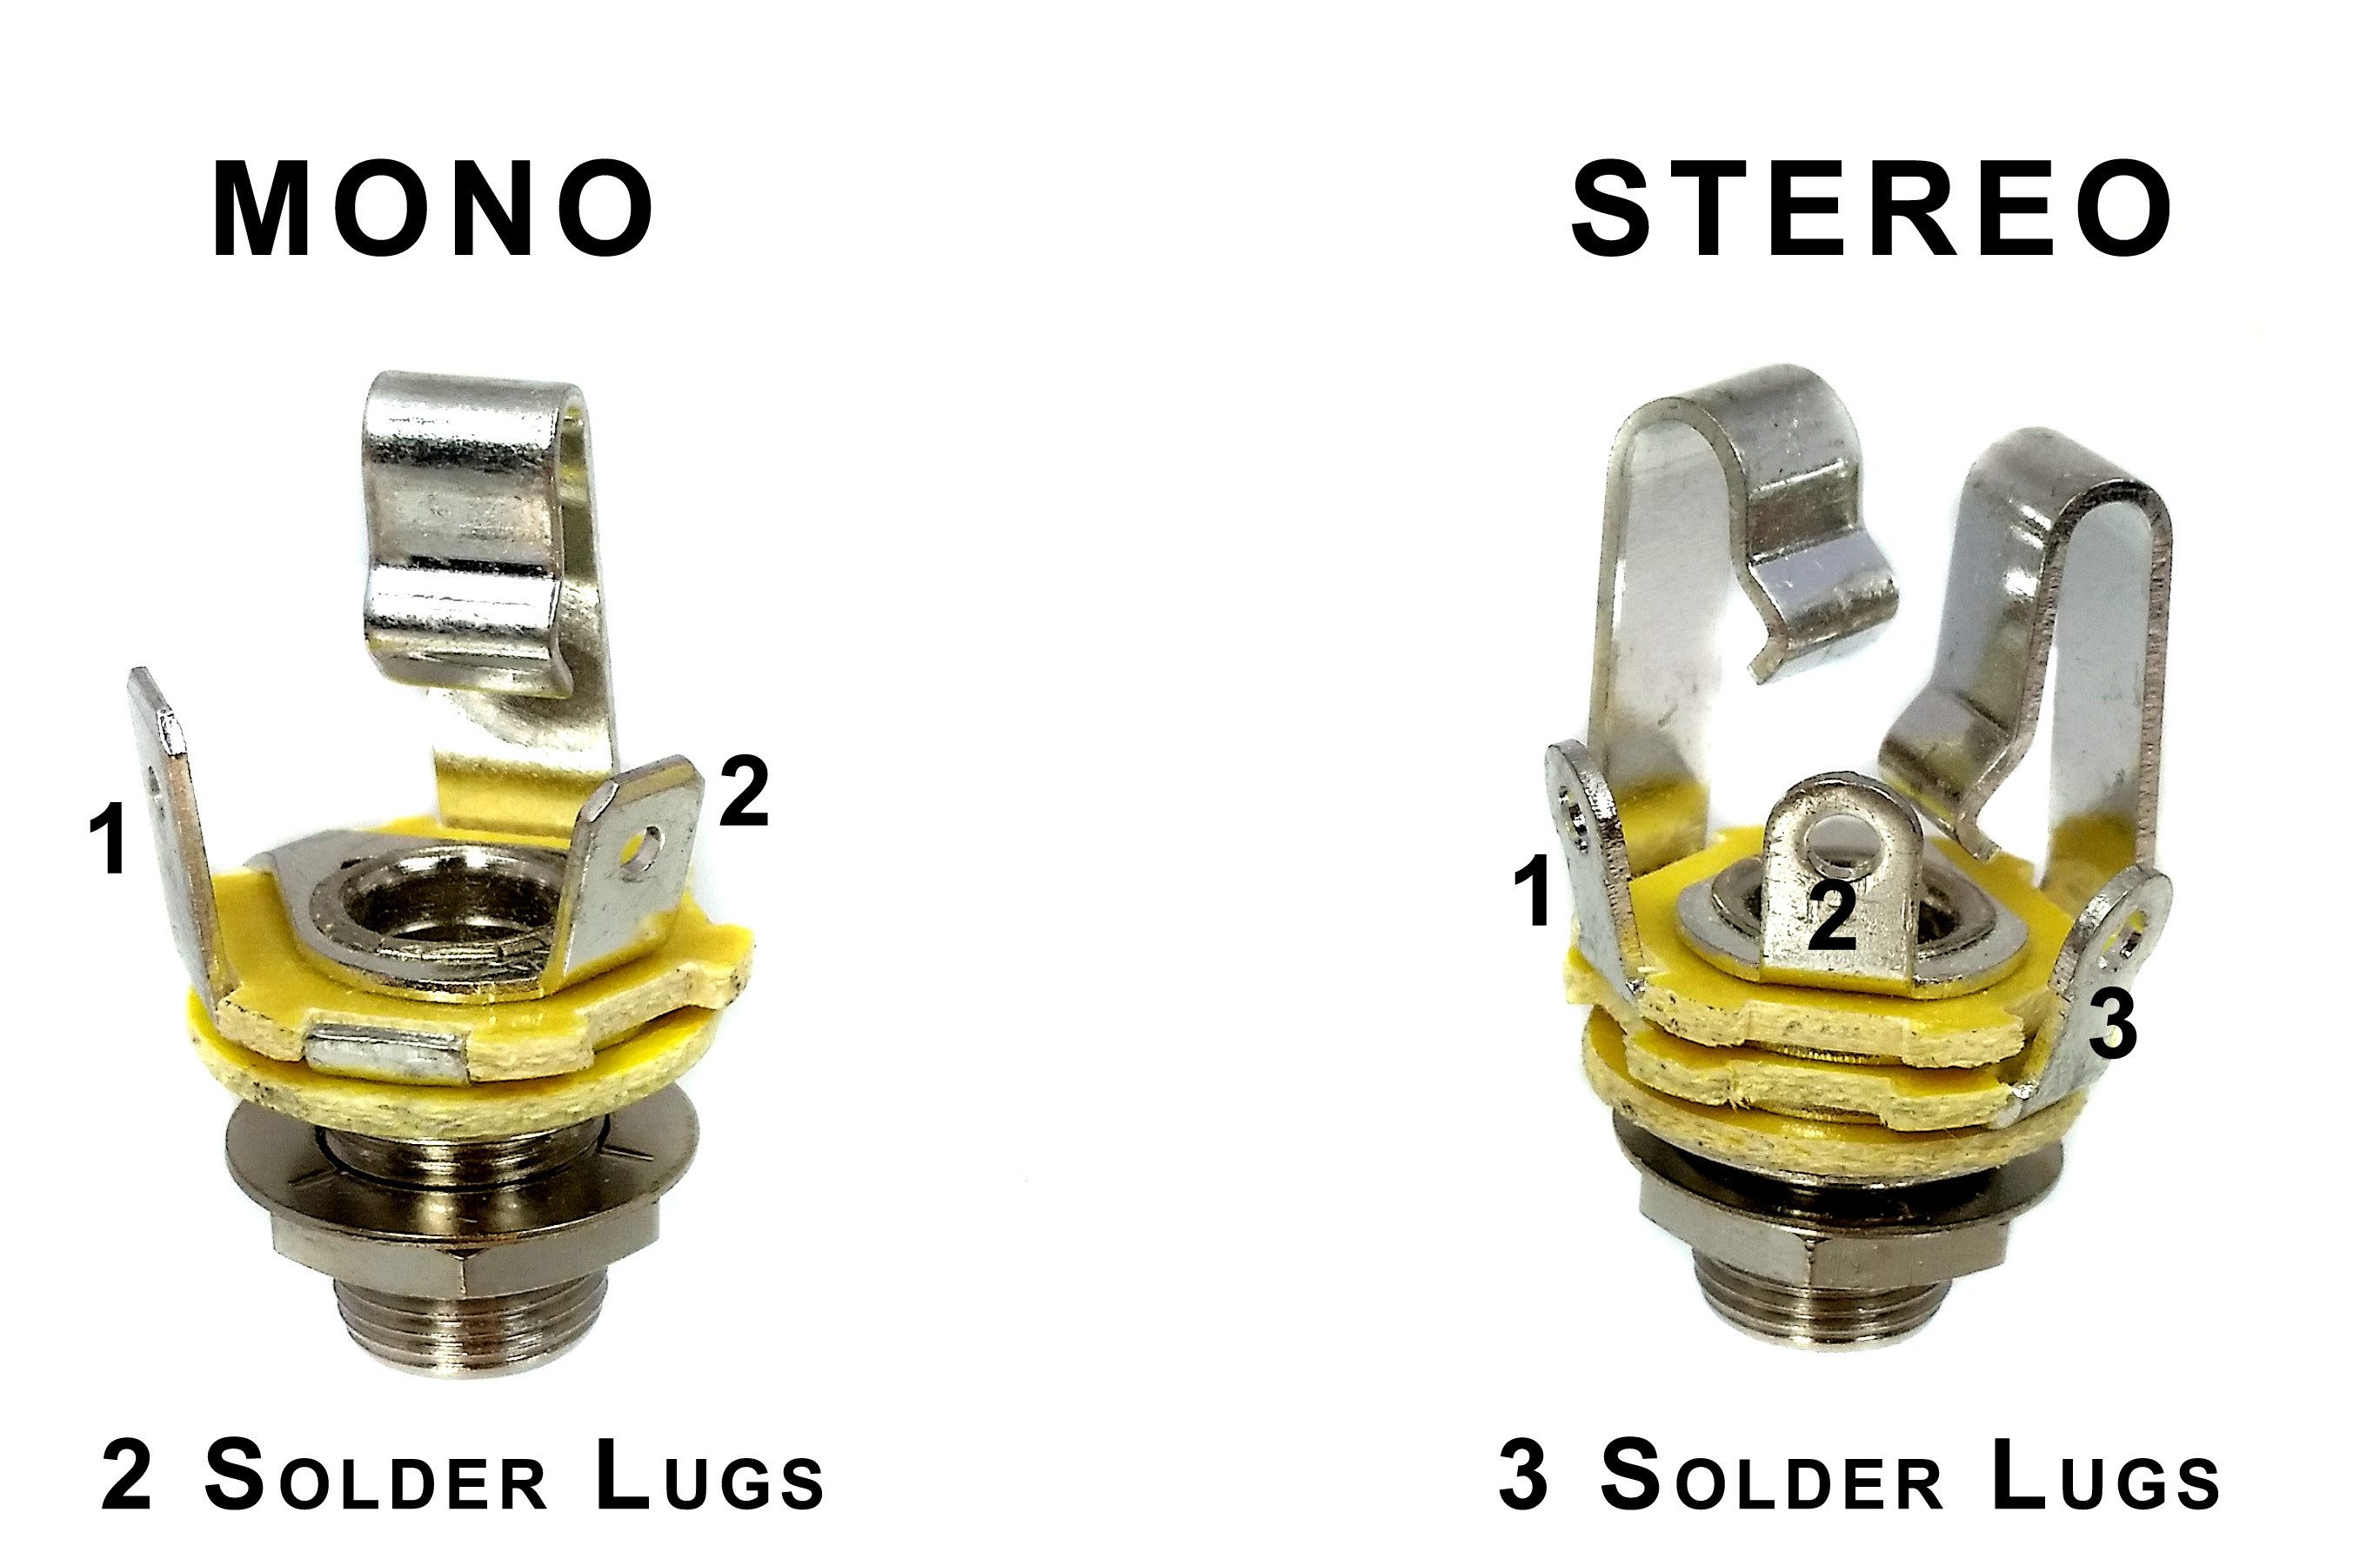 Both Jacks Annotated wiring mono and stereo jacks for cigar box guitars, amps & more